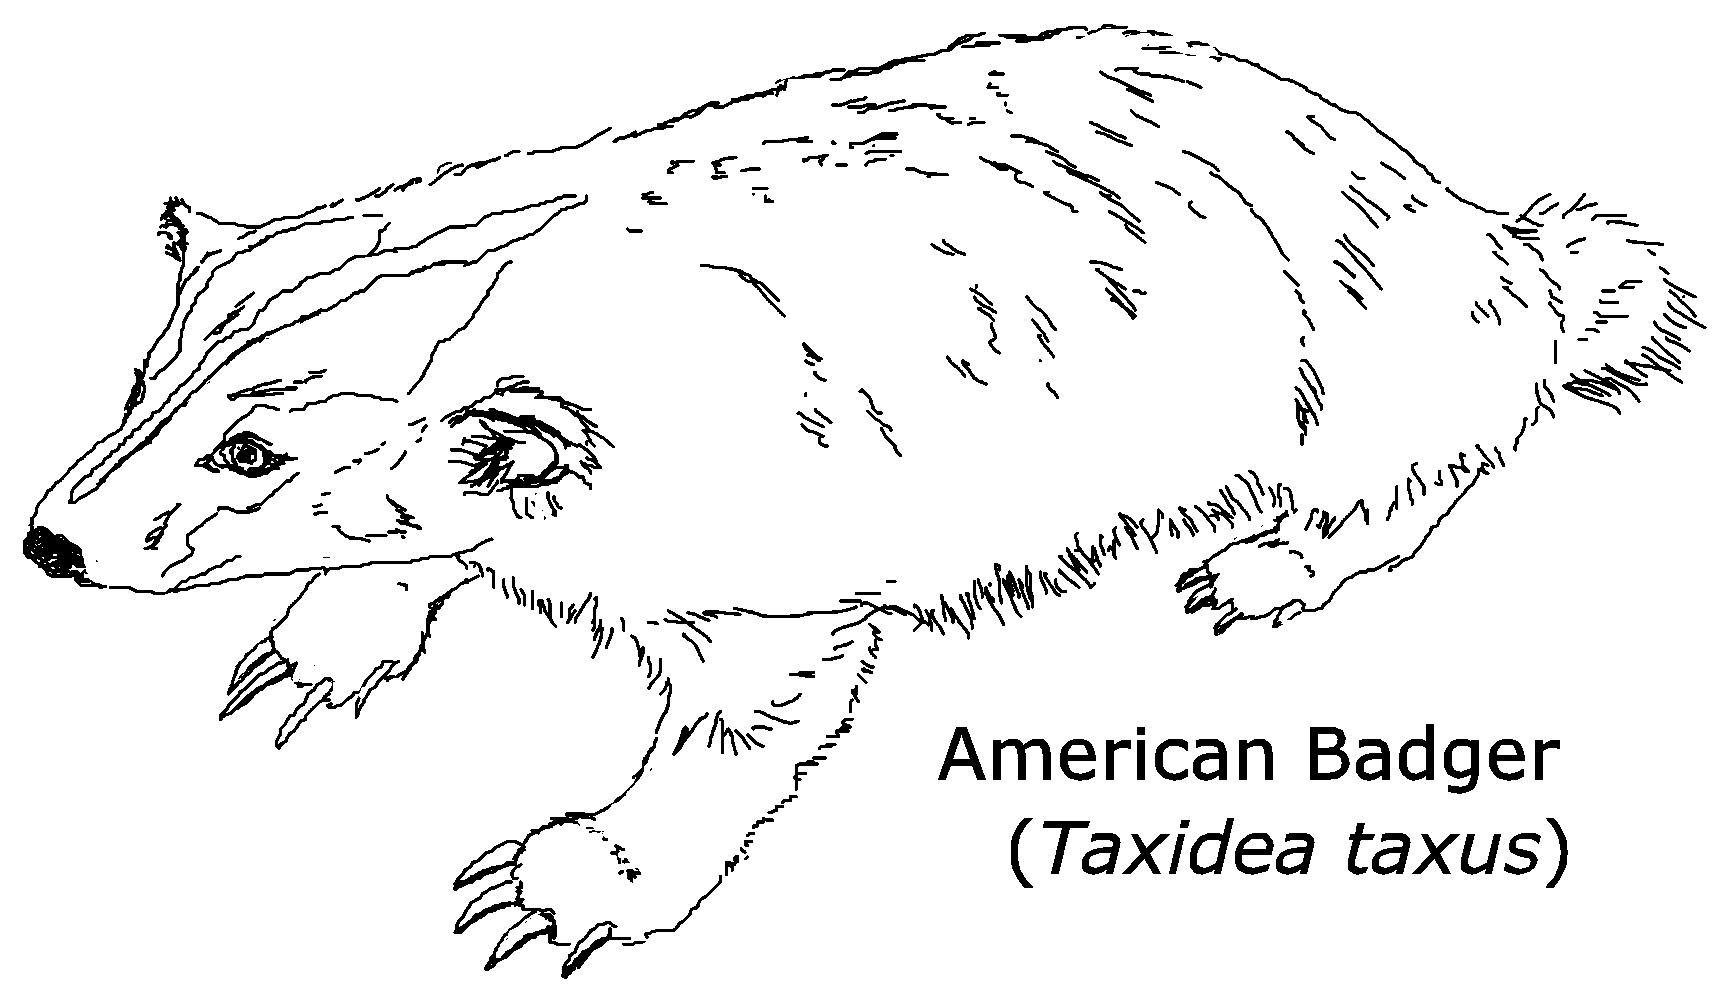 Coloring pages printable for. Badger clipart american badger